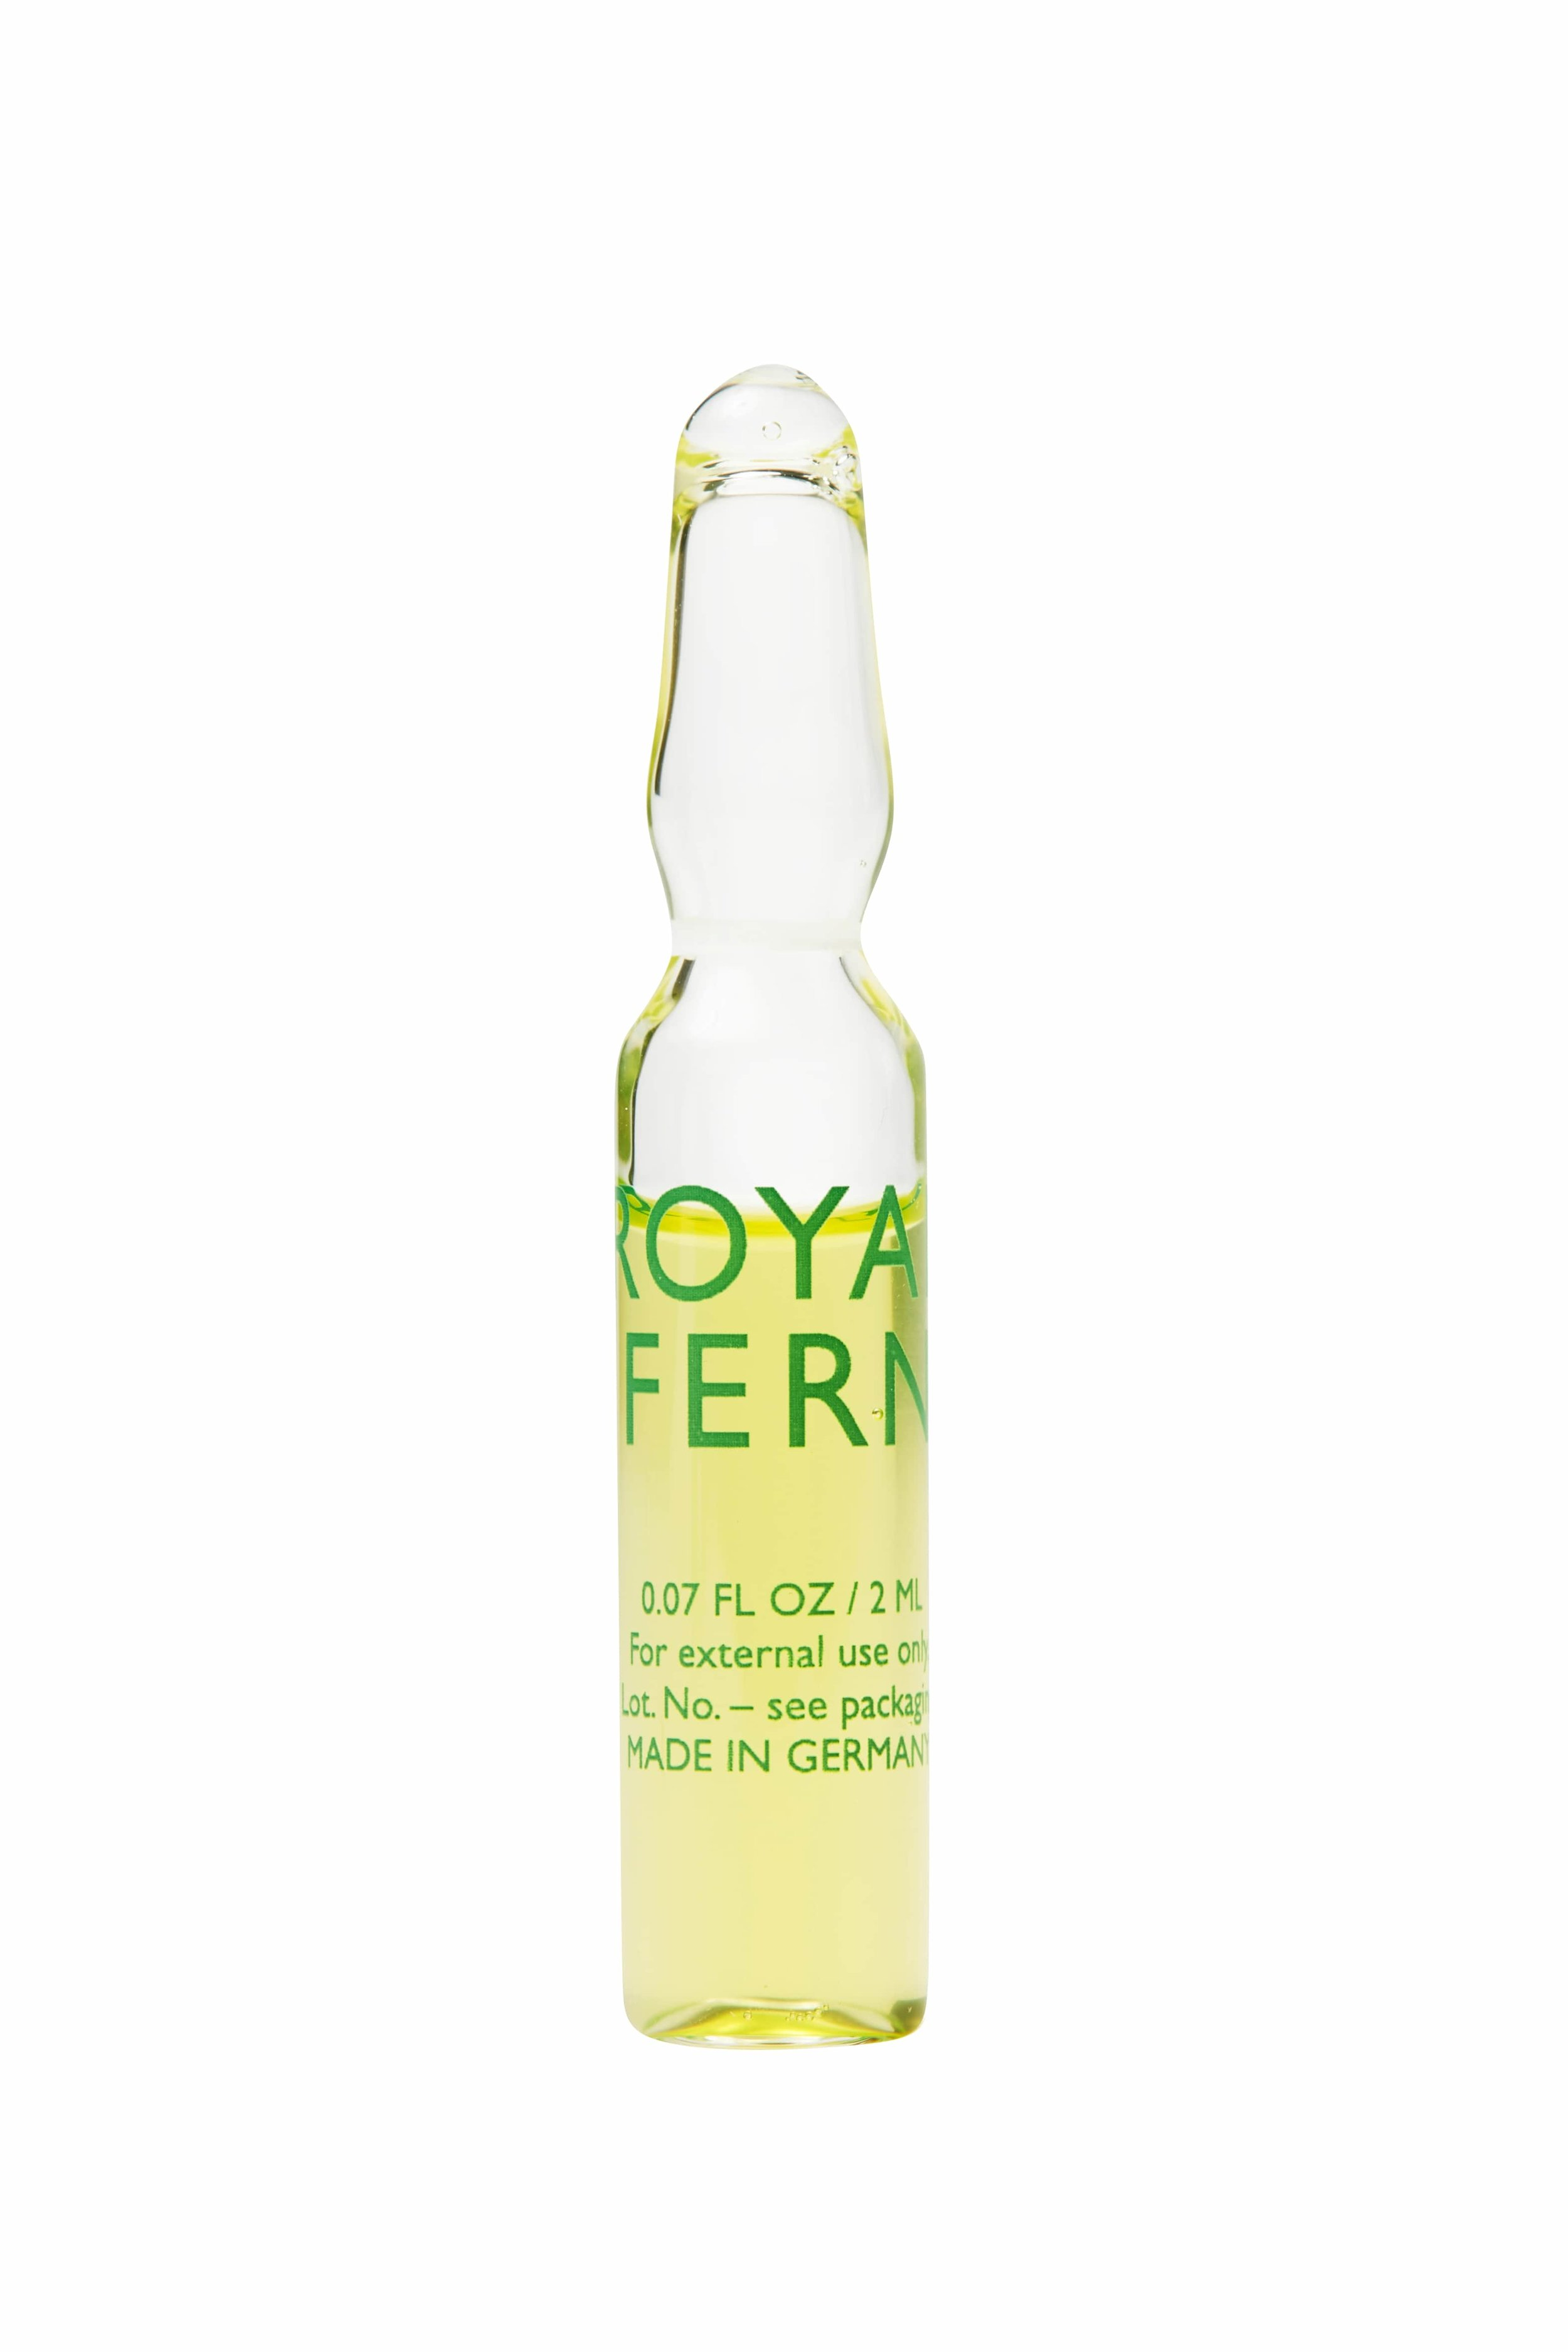 Royal Fern Phytoactive Anti-Oxidative Ampoules, Available at Olivela